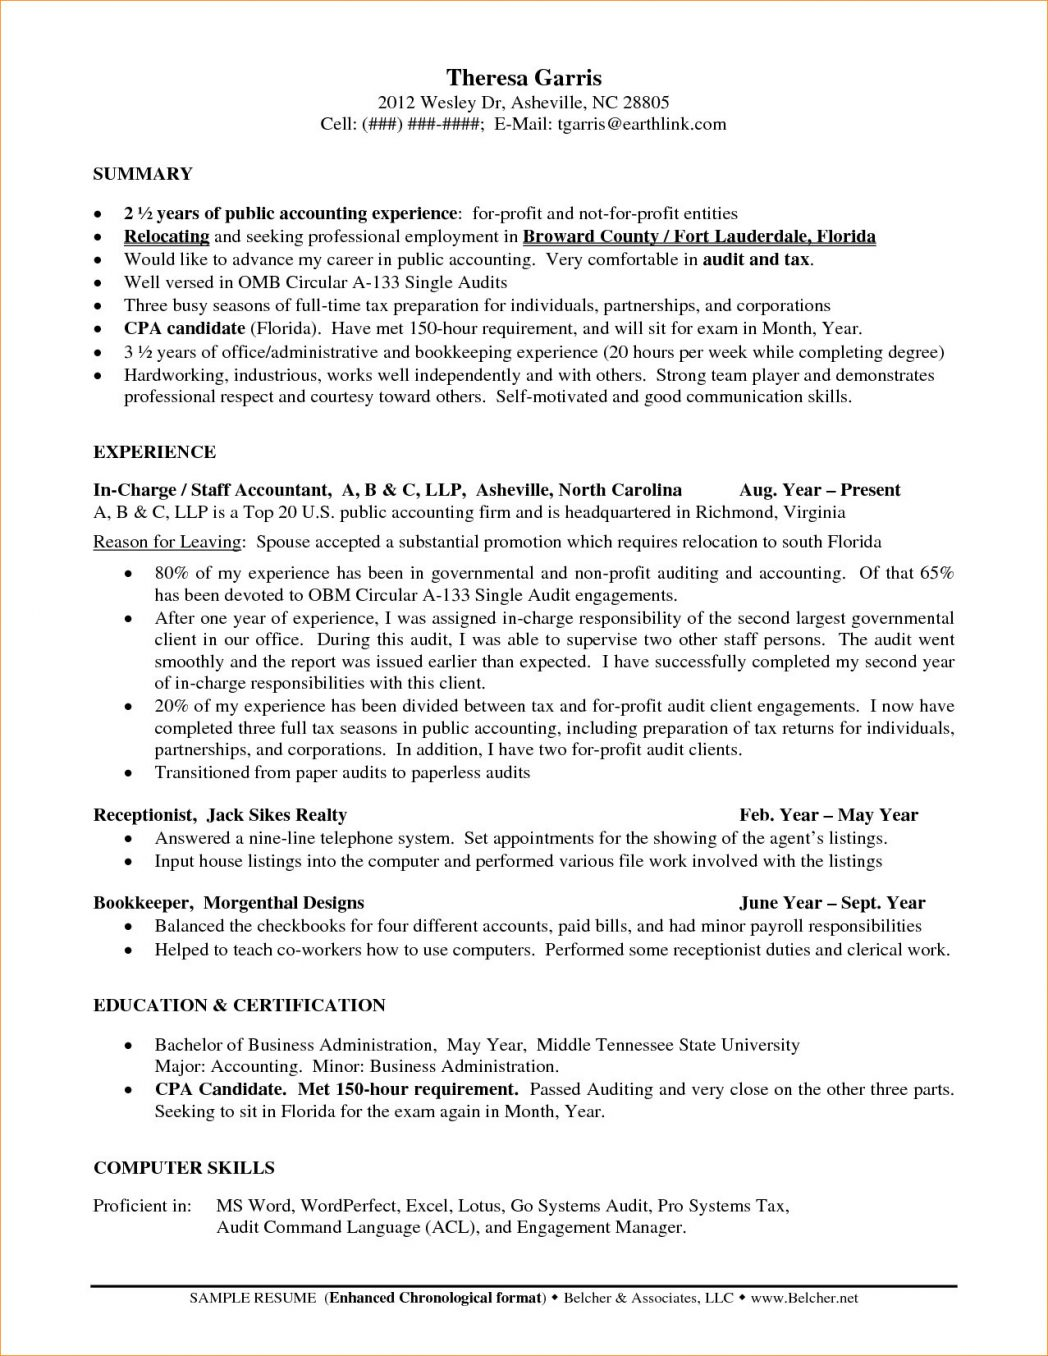 024 Essay Example Best Solutions Of Professional Mba Reflective Help Mri Tech Writing On Teaching Sample Cover Grea Leadership Introduction Using Gibbs Model In Third Person Work Experience Beautiful Examples For Middle School Apa High Full